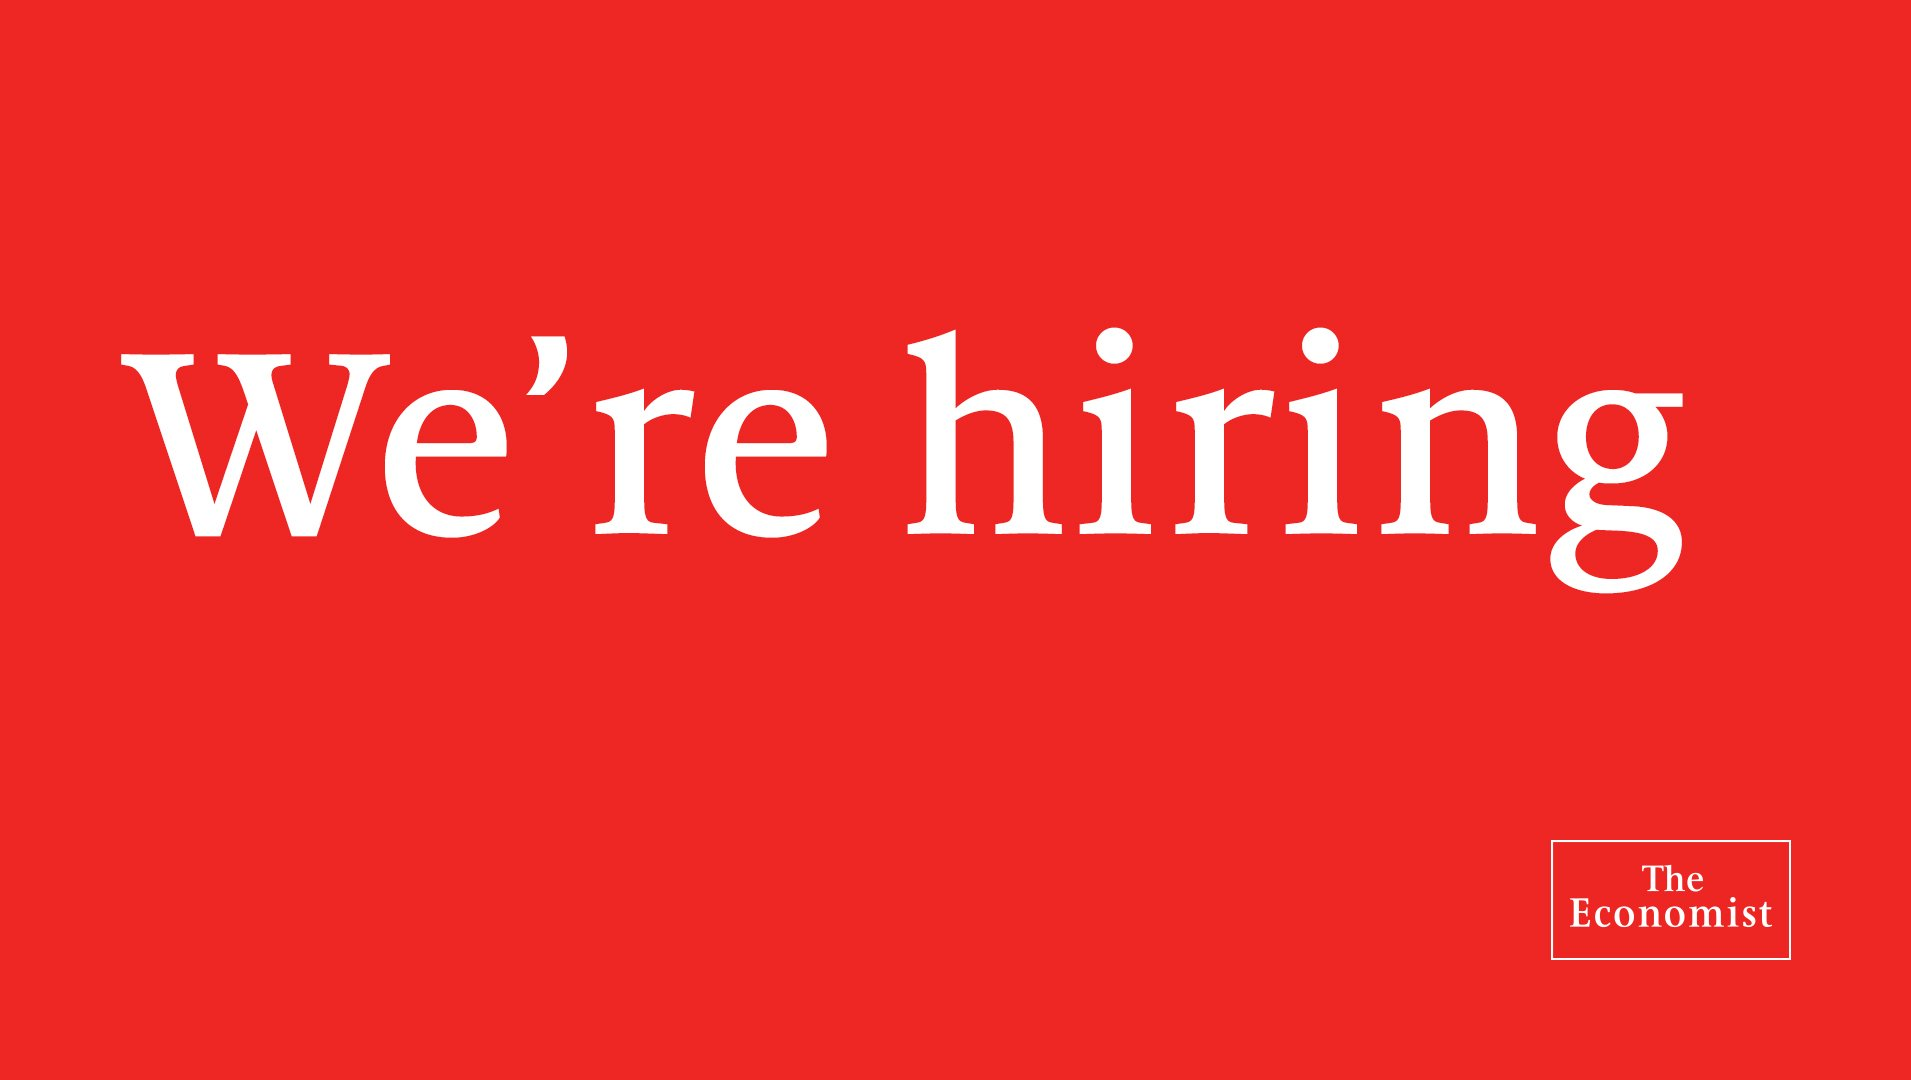 We're hiring a social-media fellow, based in London https://t.co/gElYzwzNtf https://t.co/K0bMogPhUd